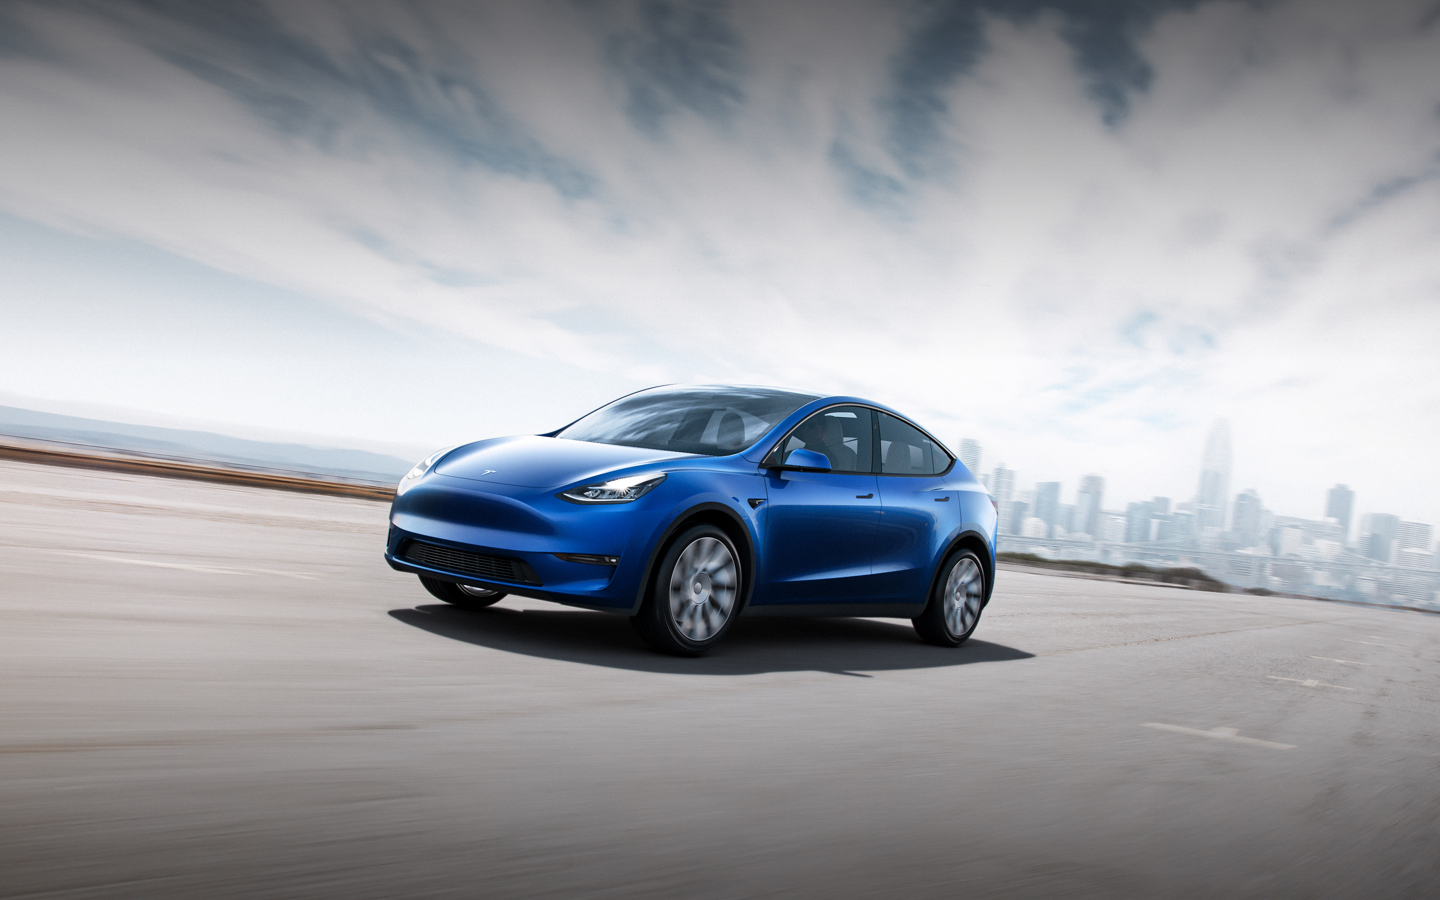 Could battery lawsuits, material shortages delay some EVs?